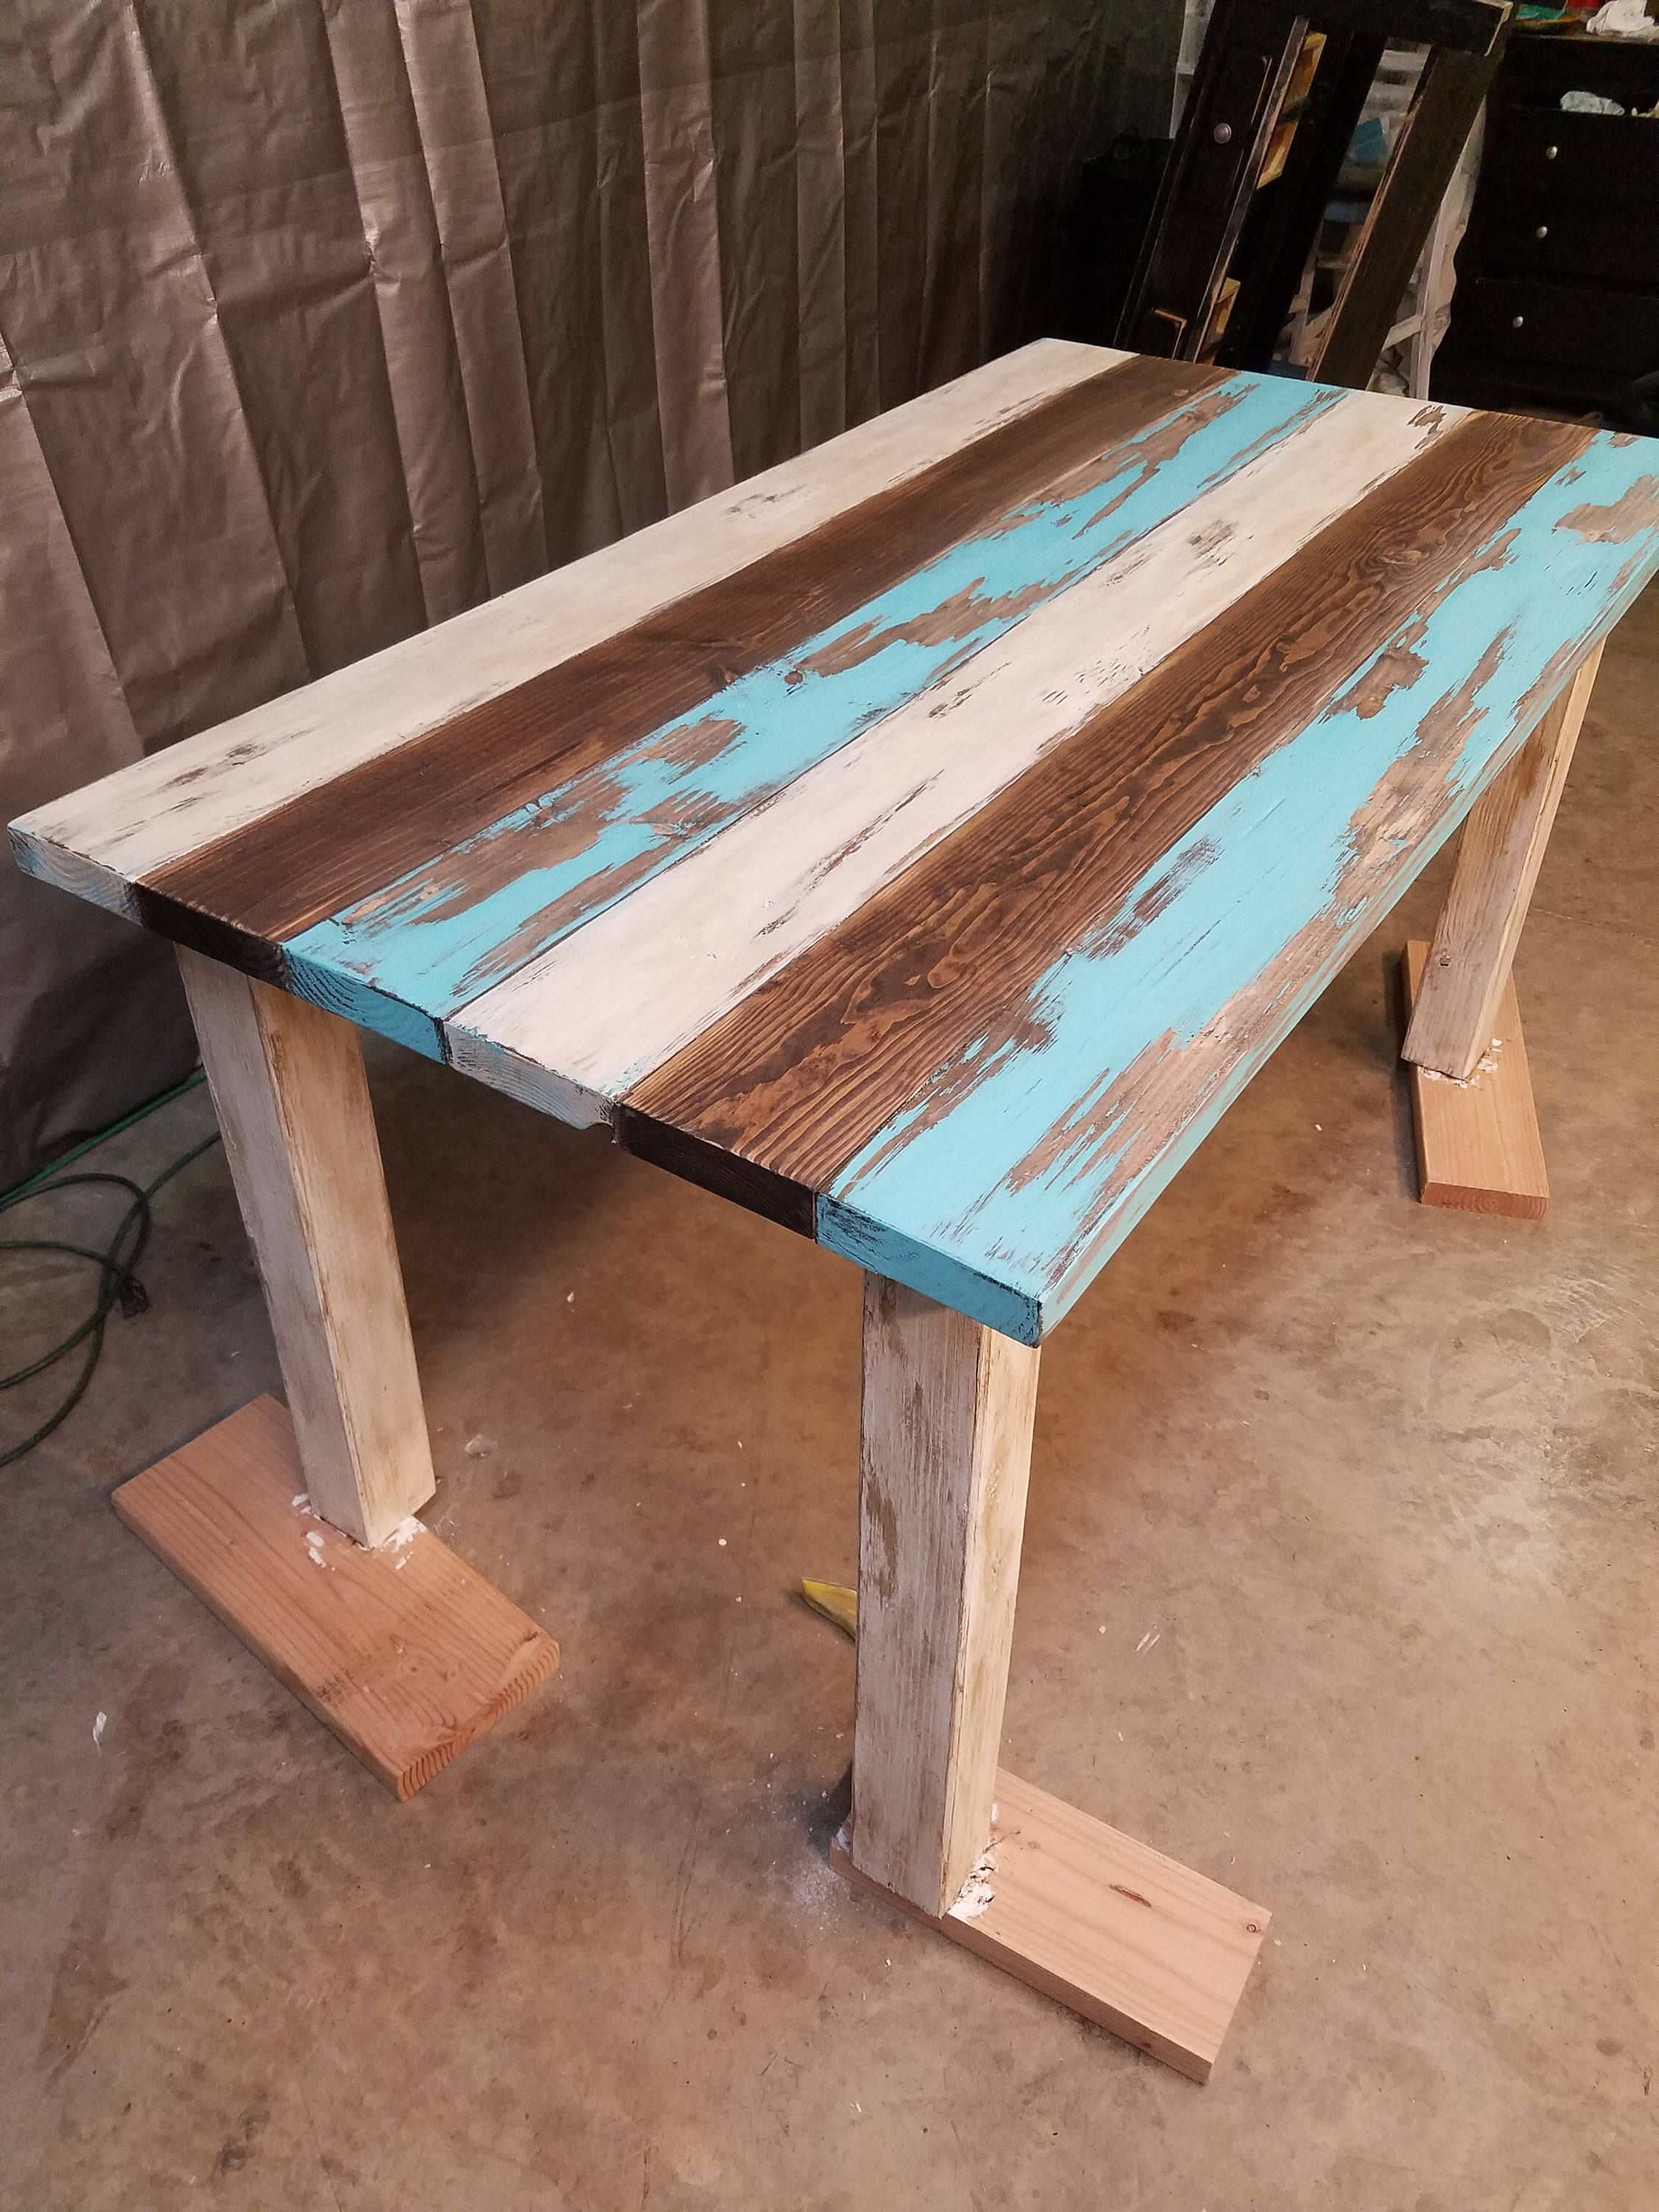 Attrayant Antiqued/Painted/Distressed Turquoise Table By JujubeeFarmTables On Etsy